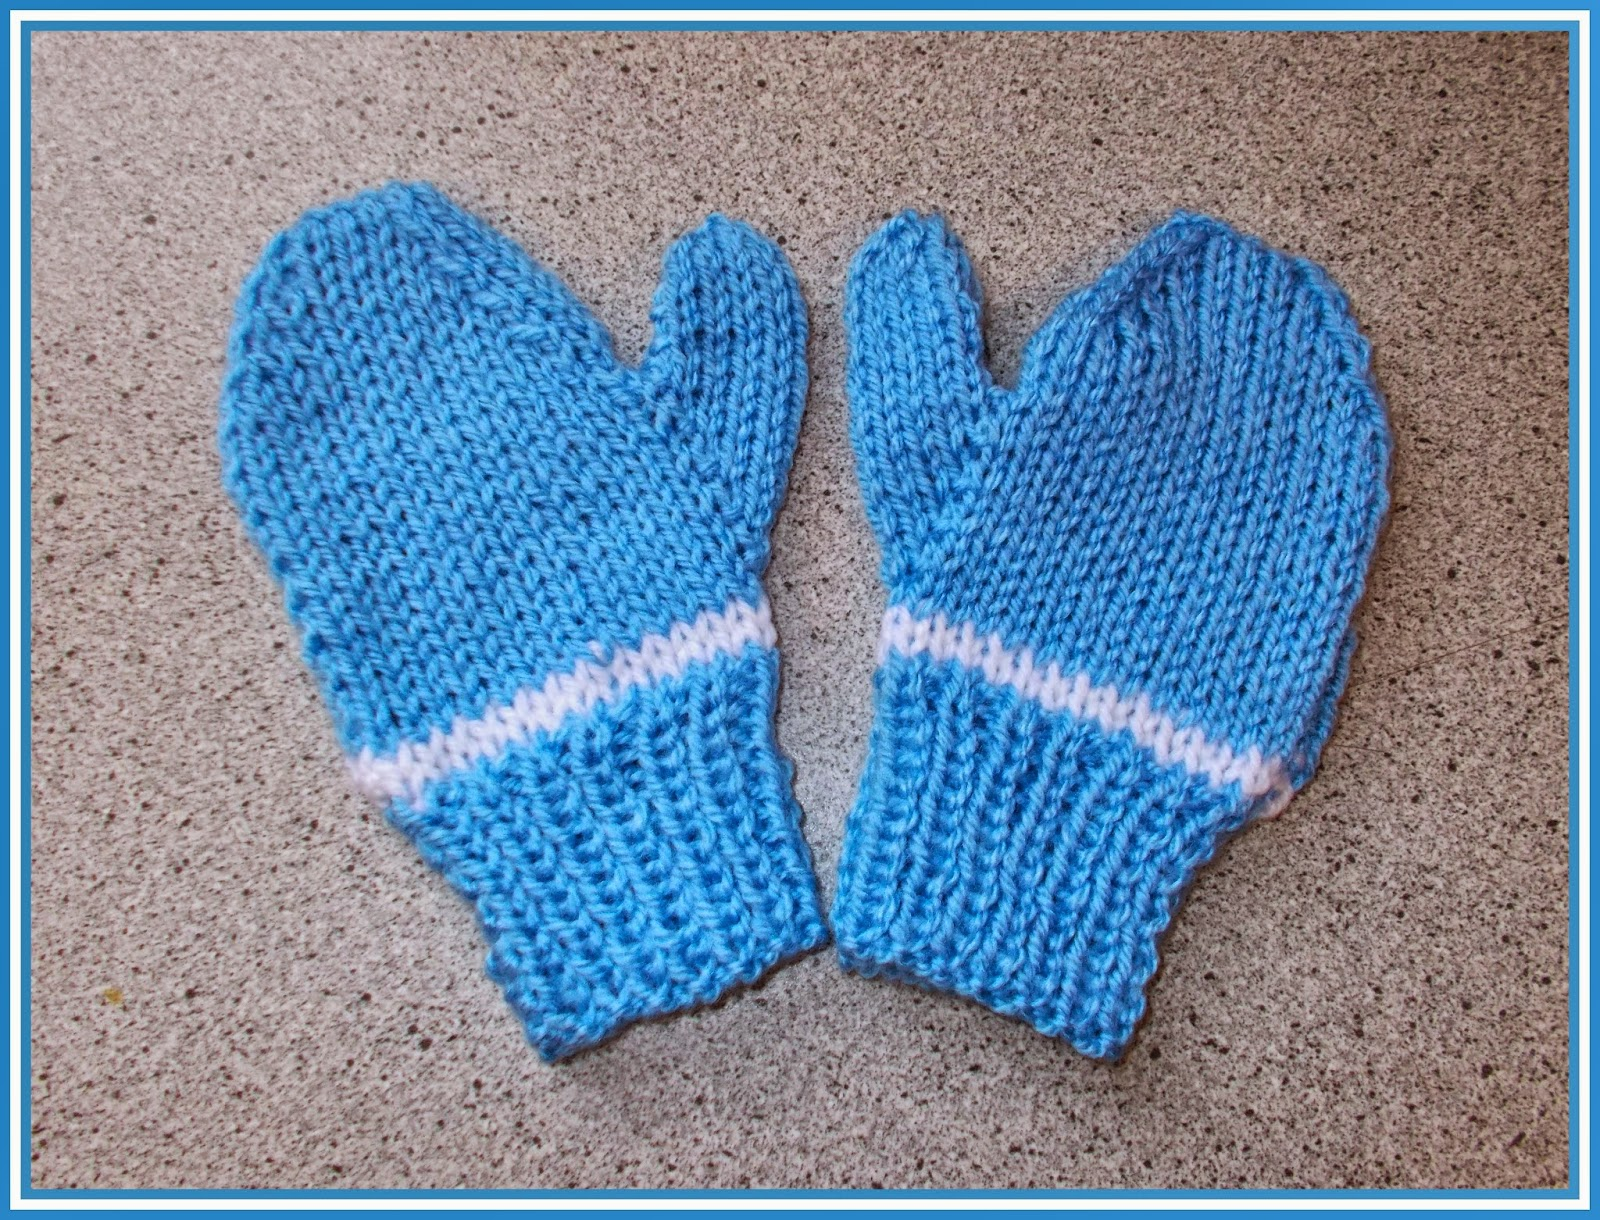 Knitting Pattern For Children s Mittens On Two Needles : mariannas lazy daisy days: Easy 2-needle toddler and child mittens - boy...